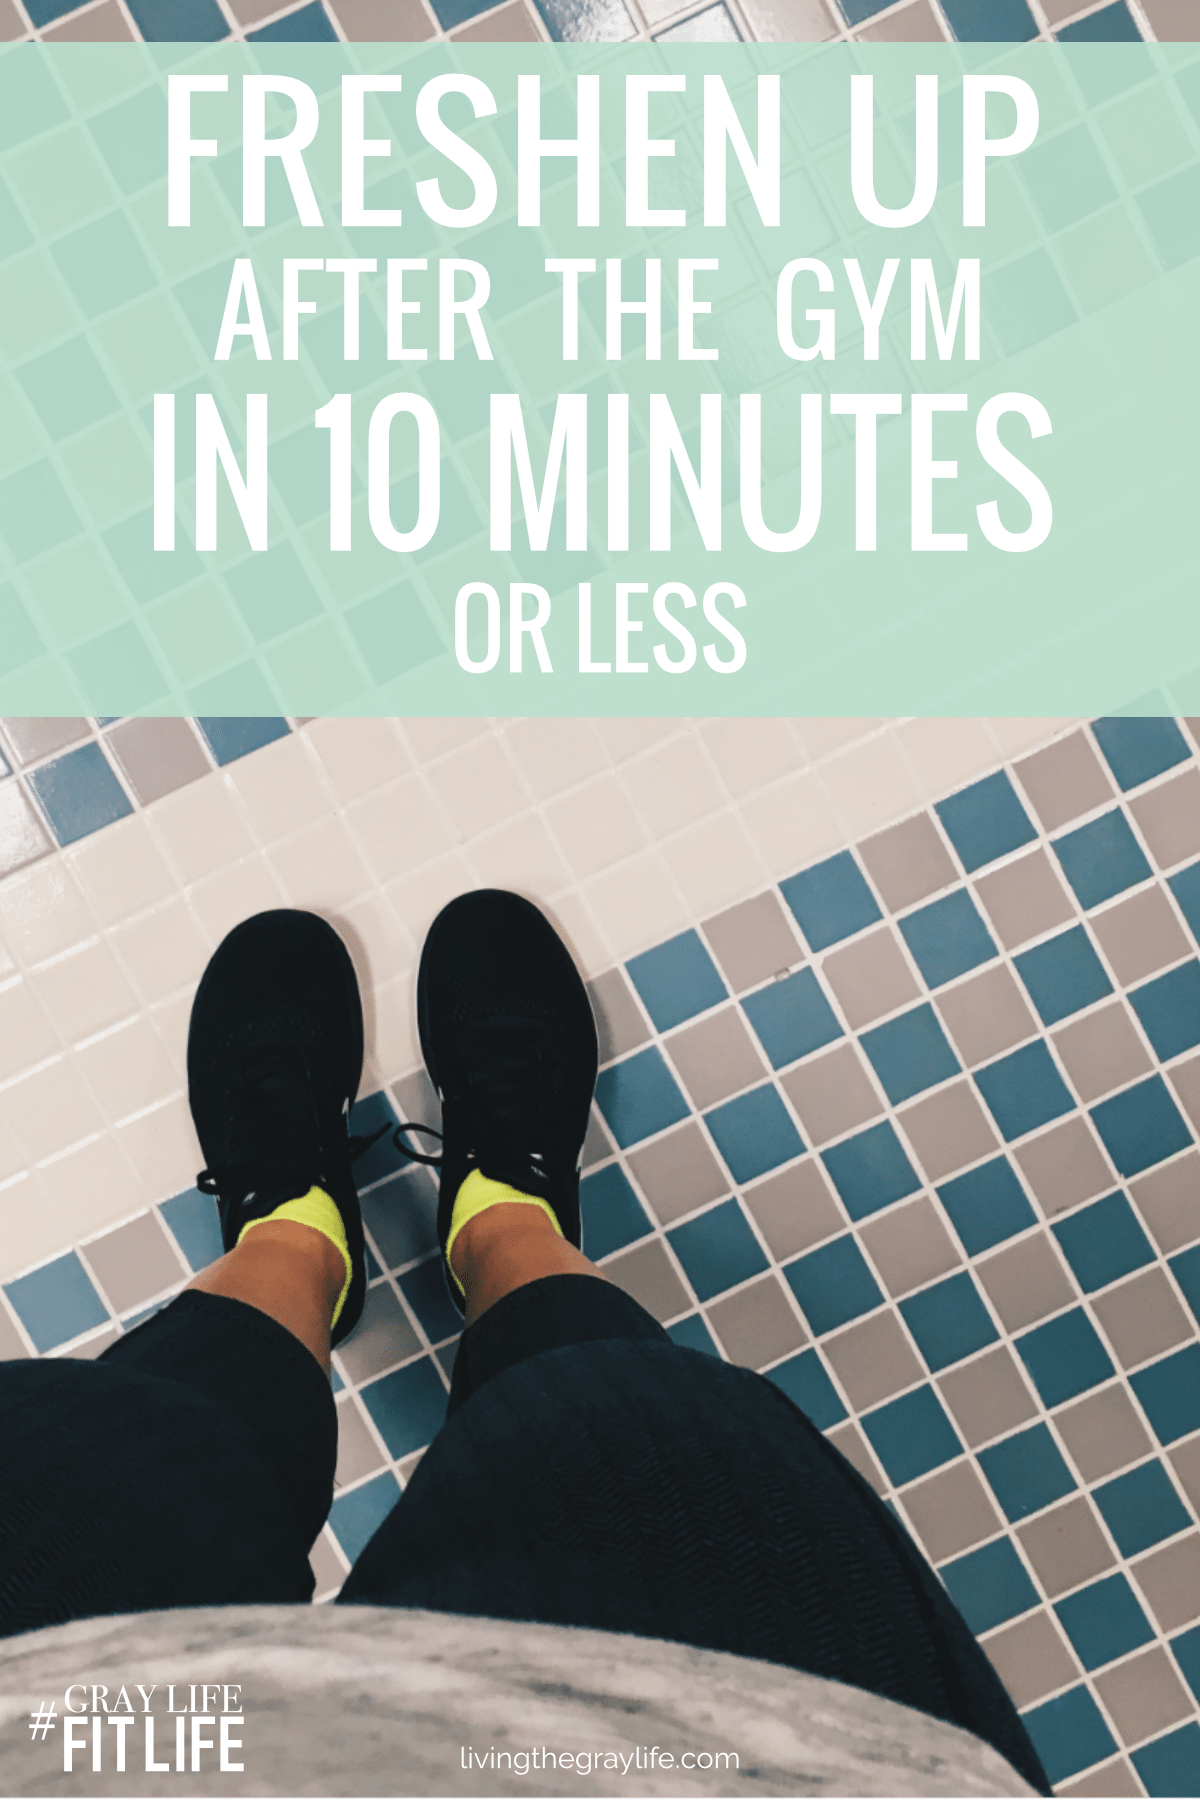 Think you don't have time for the gym because you don't have time to shower after your workout? Wrong. This simple 10-minute gym routine will get you in and out of the gym in no time!